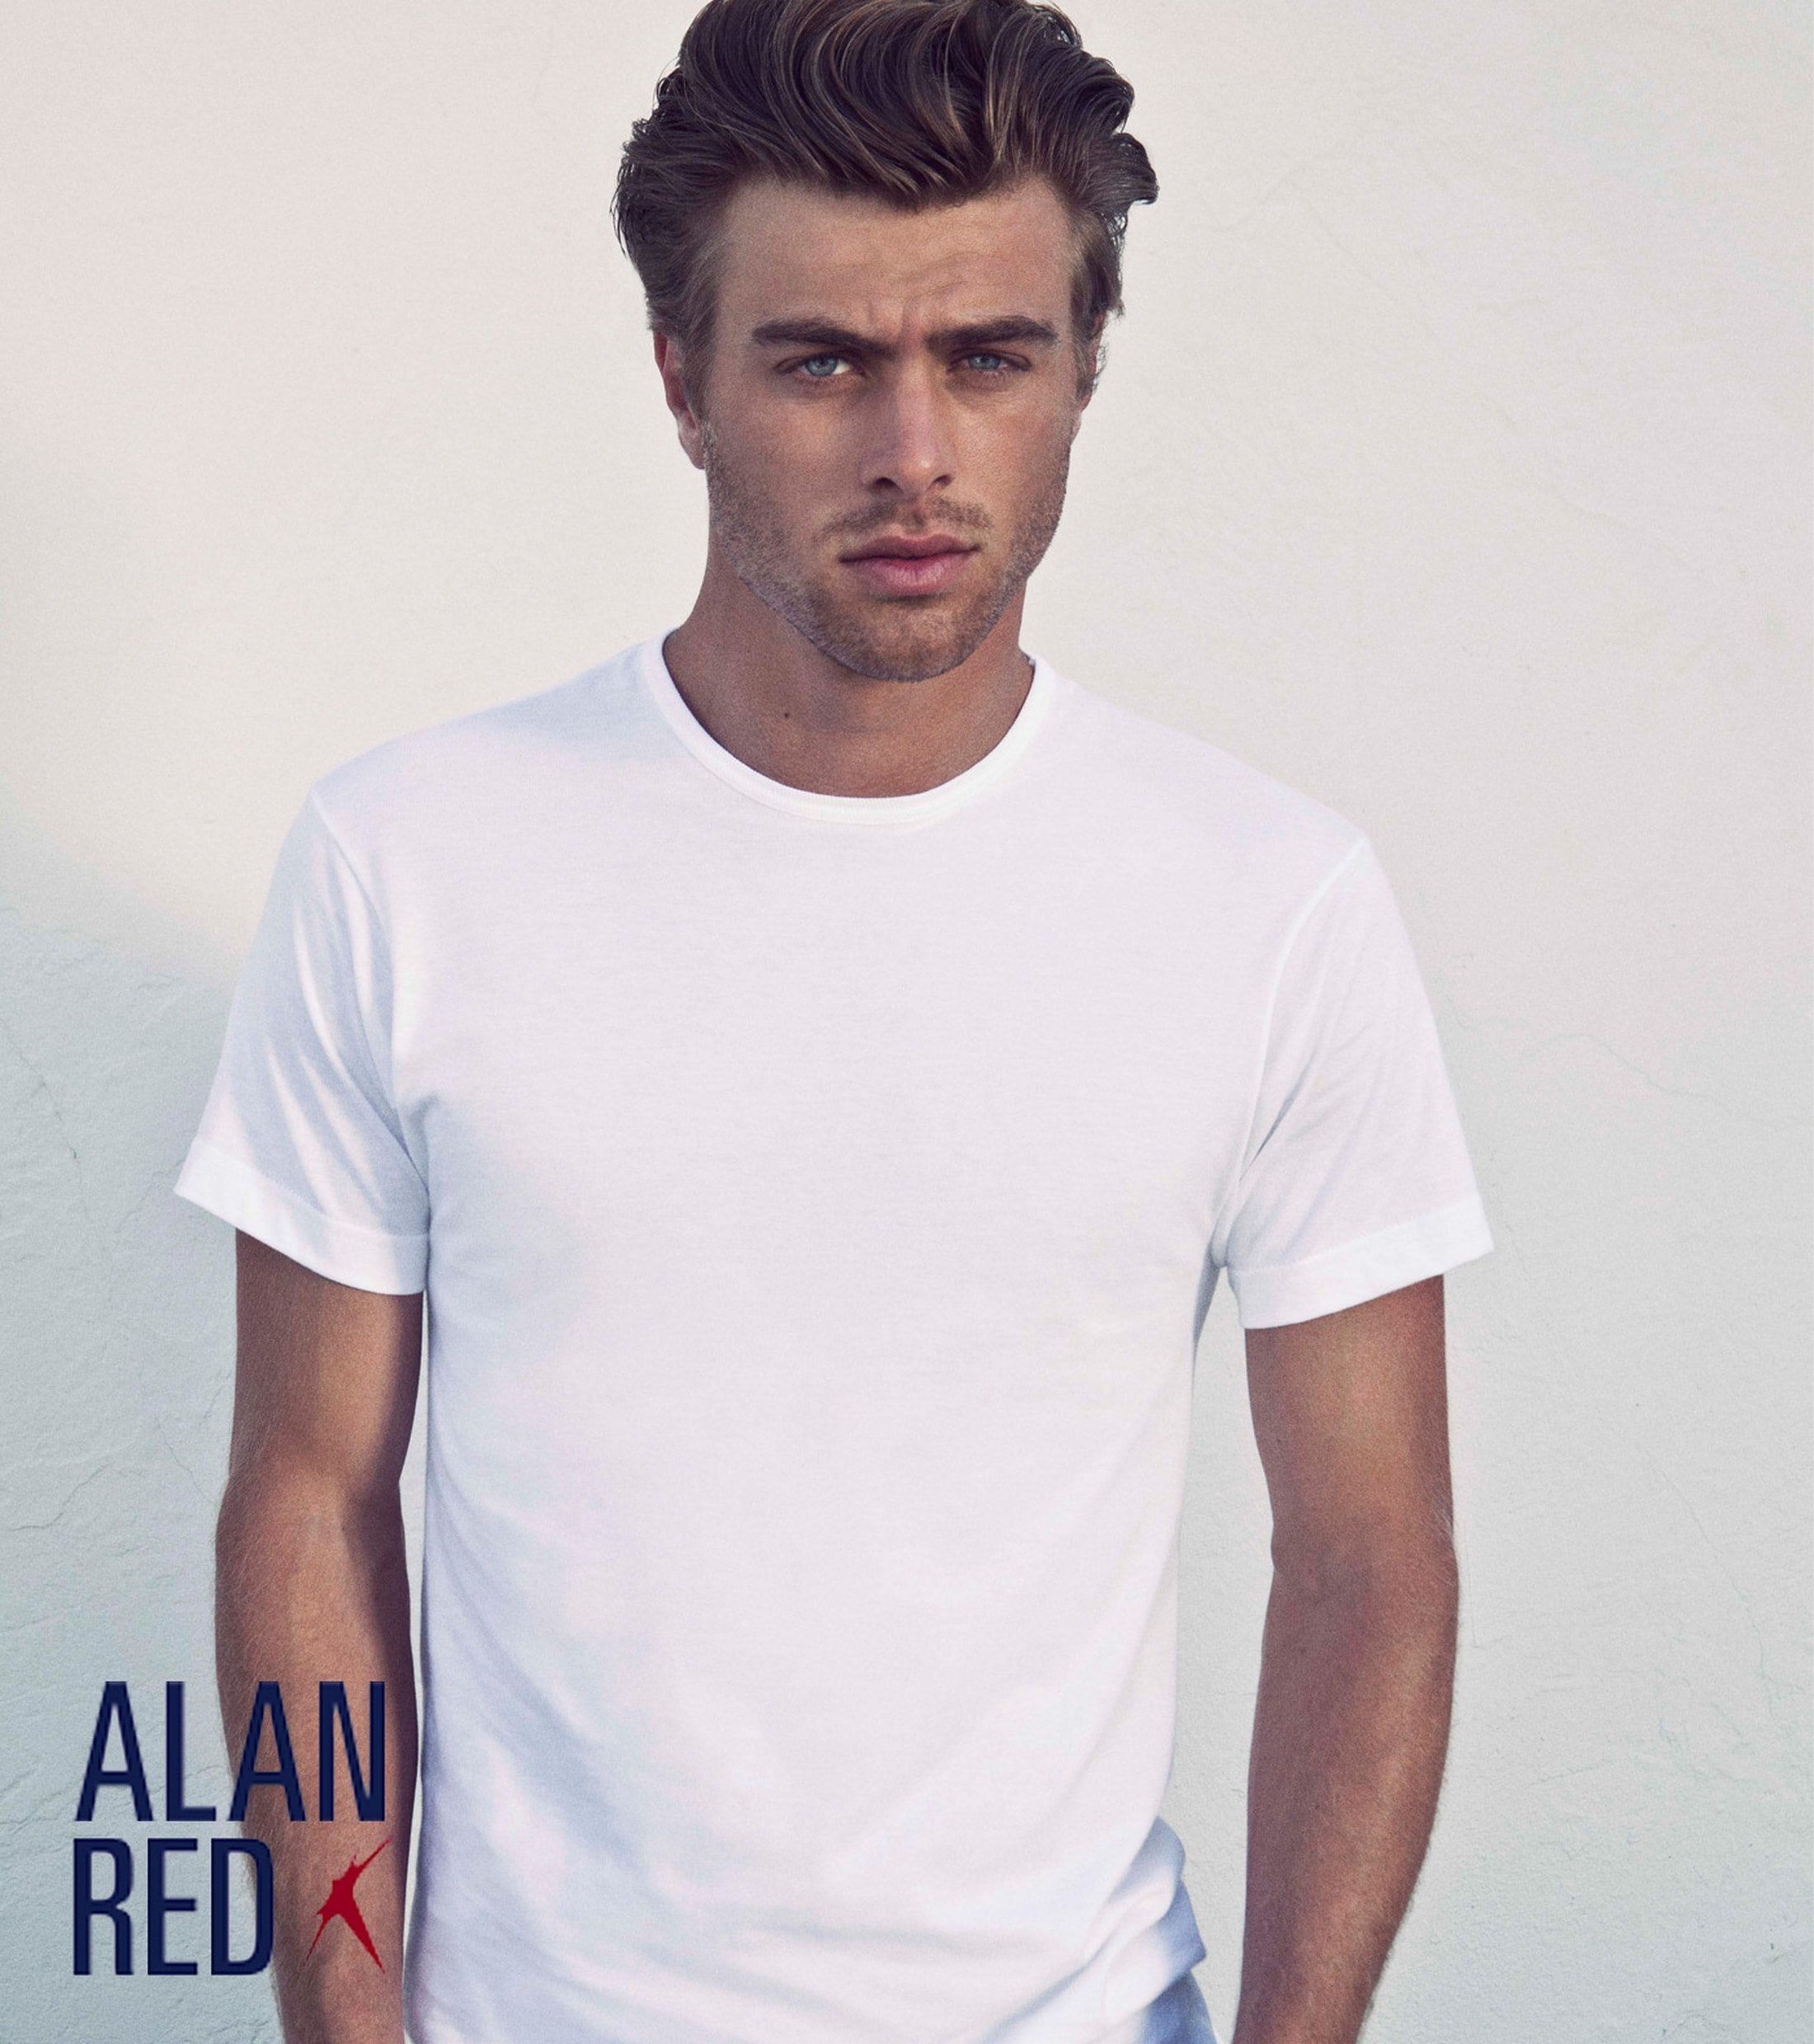 Alan Red Derby O-Neck T-shirt Red 1-Pack foto 3